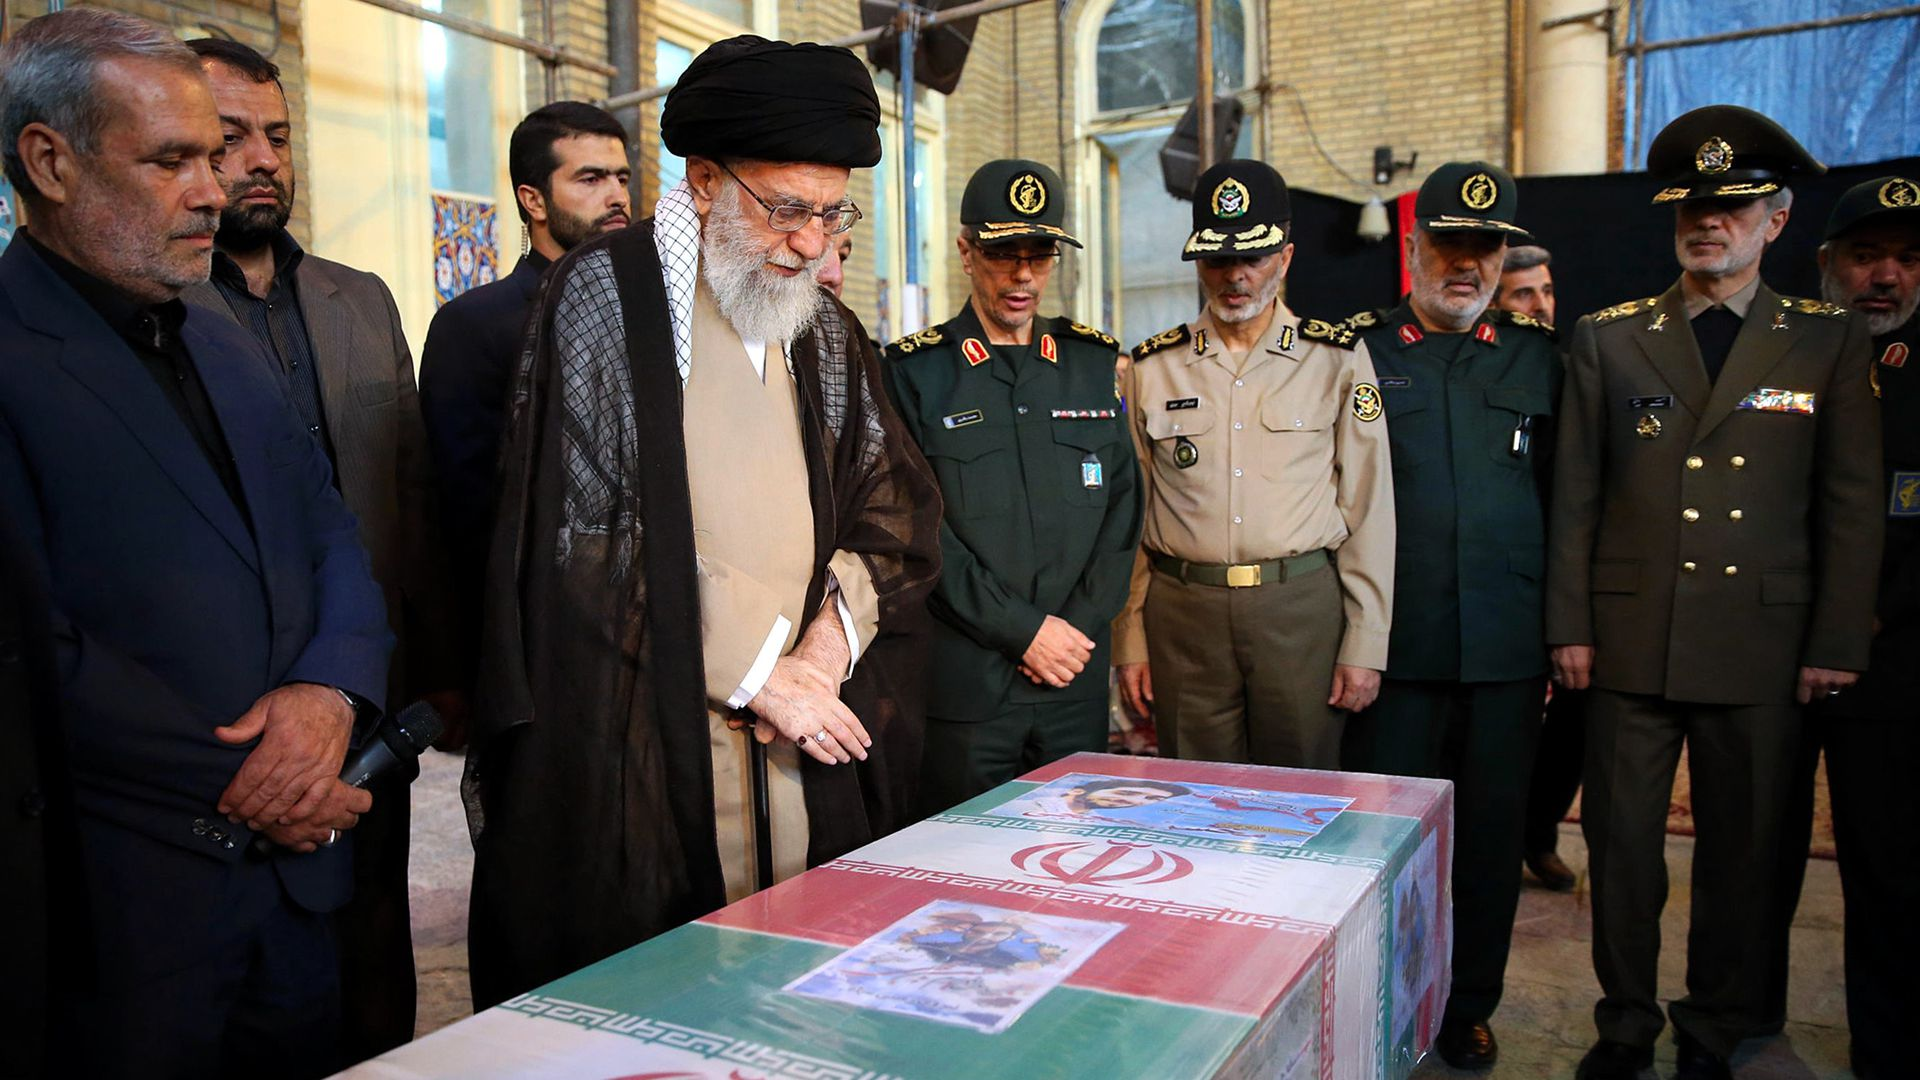 Supreme Leader of Iran, Ali Khamenei attends the funeral ceremony of a member of Islamic Revolutionary Guard Corps who died during a clash in Syria